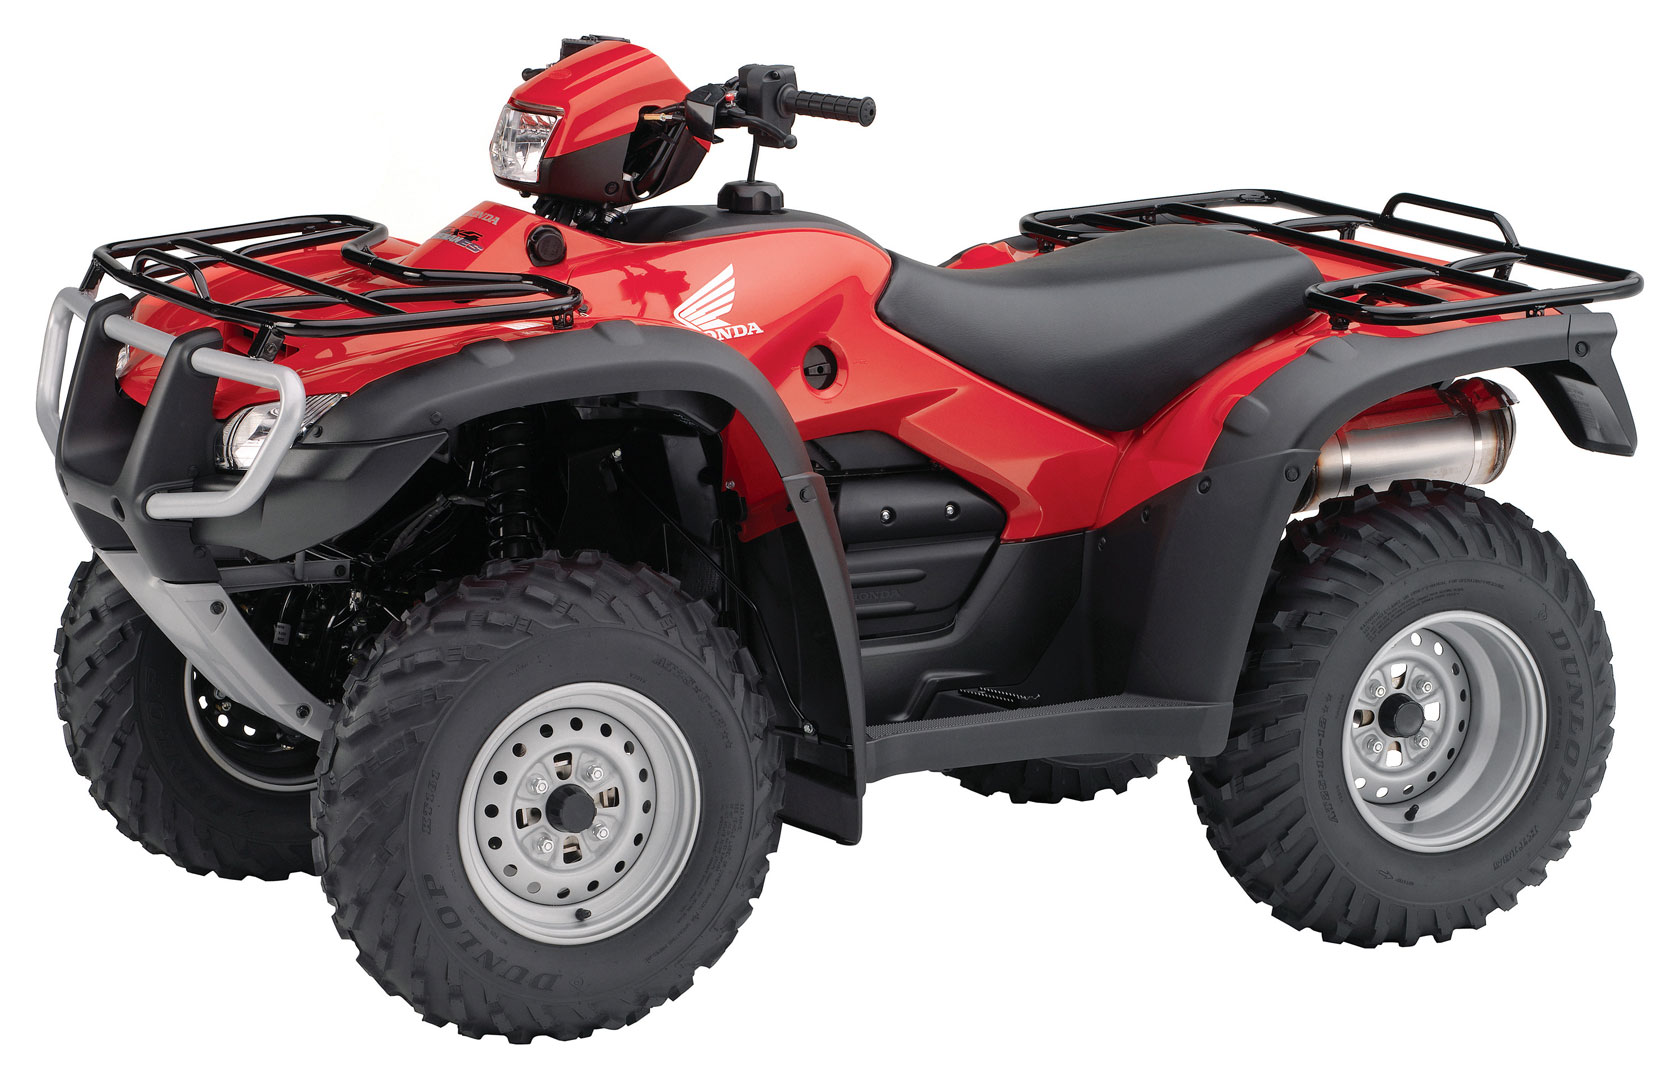 honda fourtrax foreman 4x4 es trx500fe specs 2008 2009 autoevolution. Black Bedroom Furniture Sets. Home Design Ideas